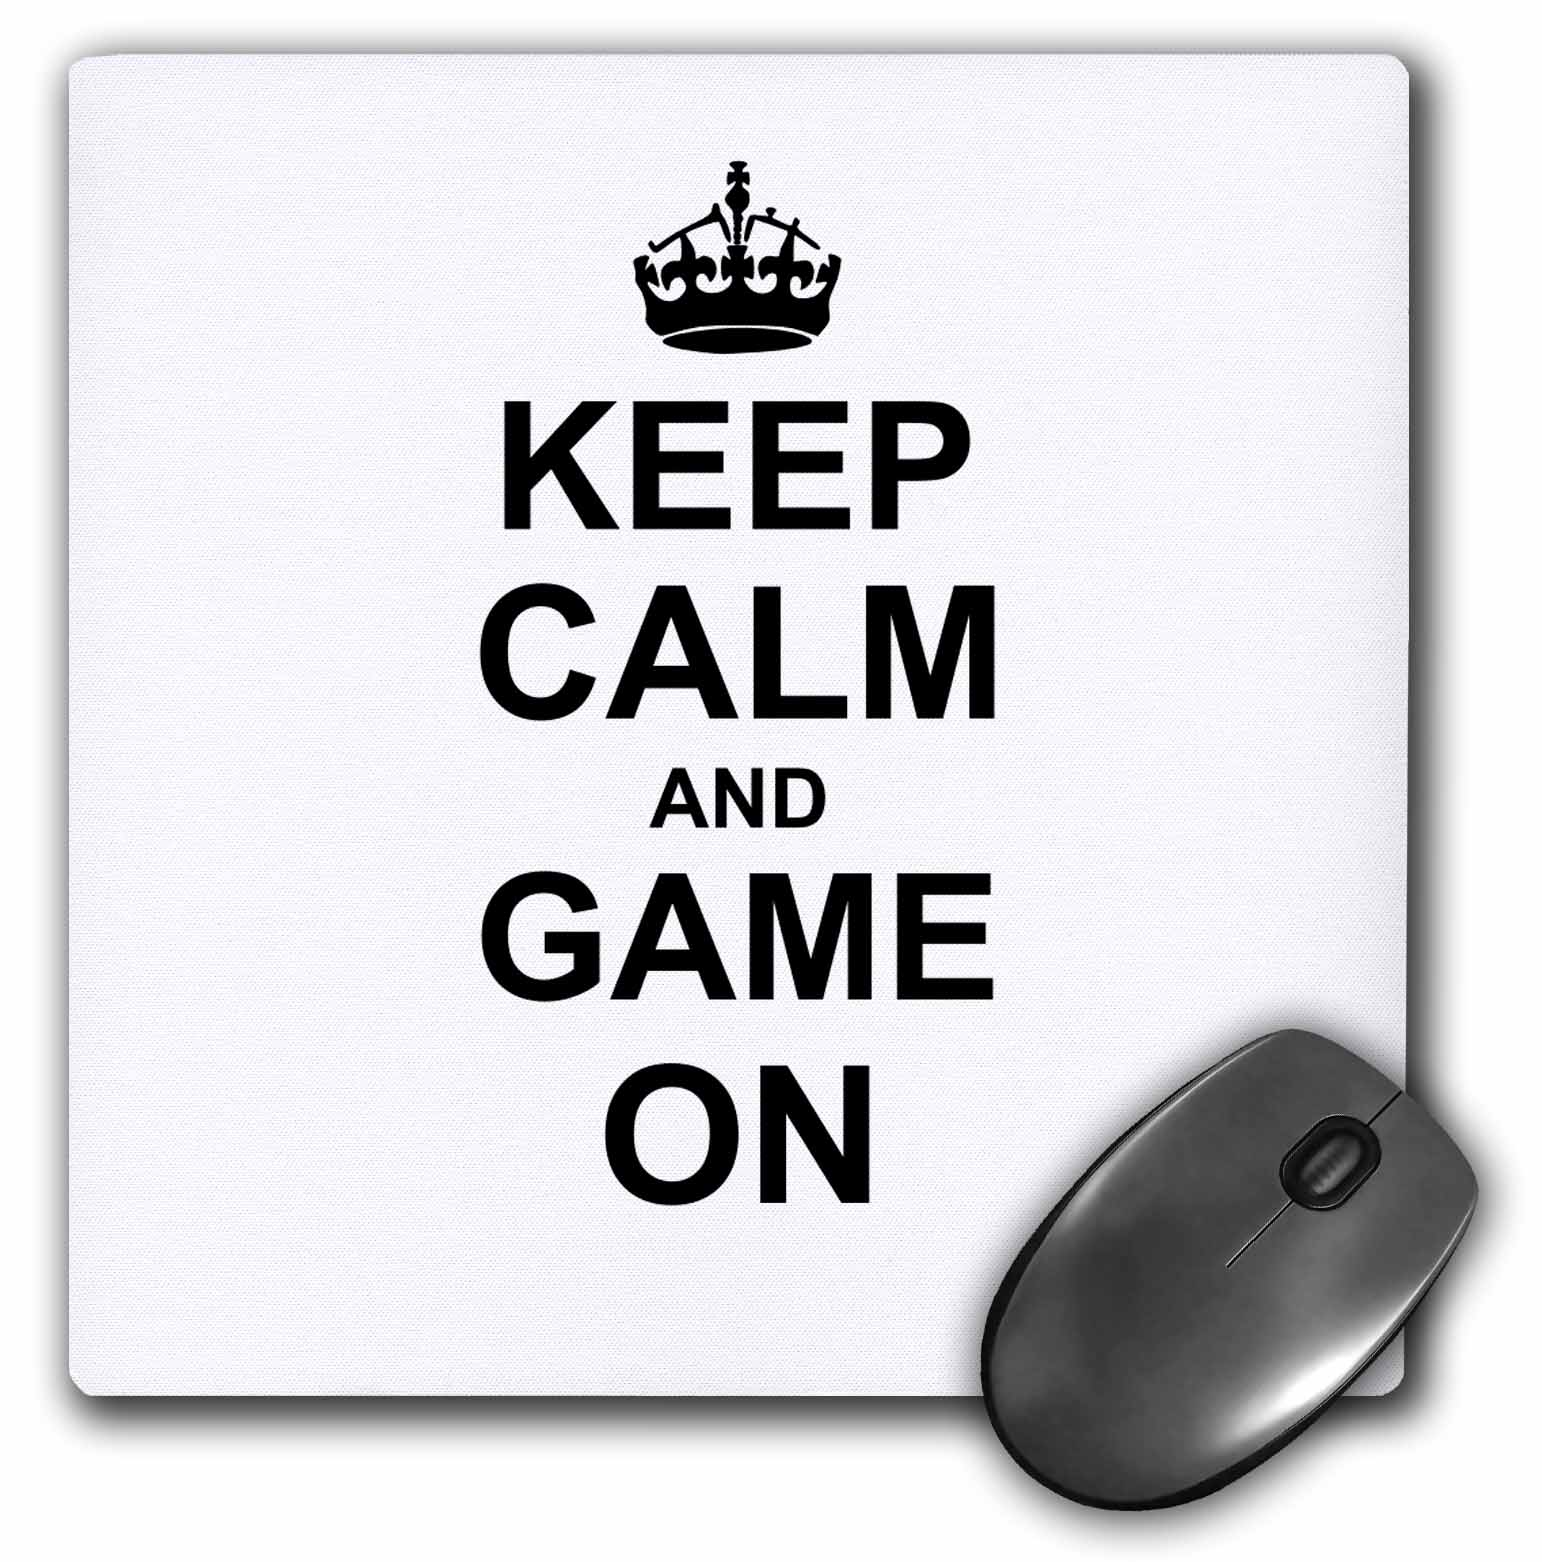 3dRose Keep Calm and Game on - carry on gaming - hobby or pro gamer gifts - black fun funny humor humorous, Mouse Pad, 8 by 8 inches